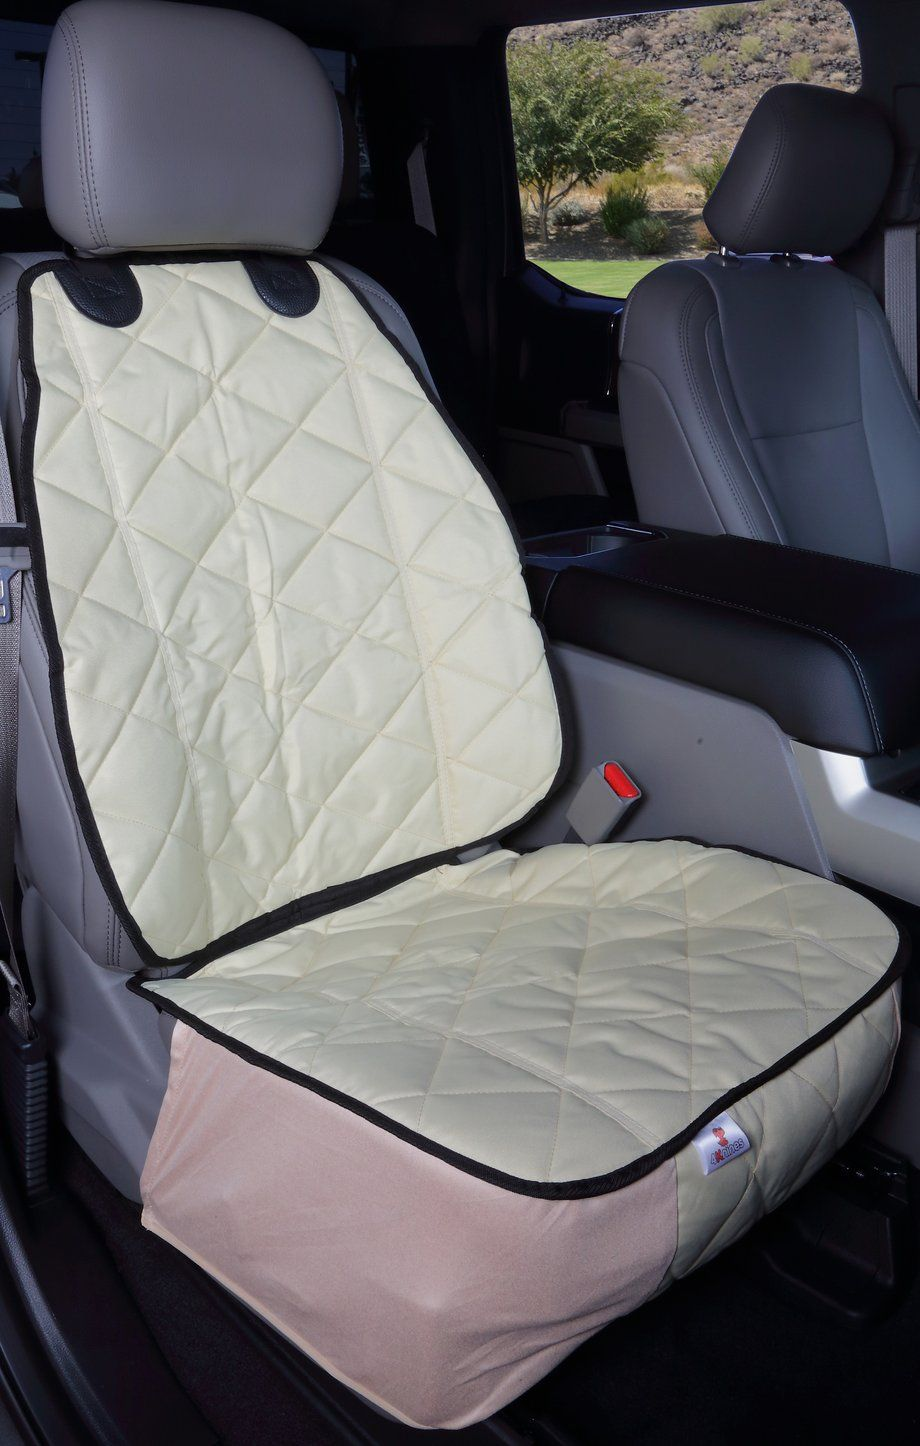 This Car Seat Cover Makes It Easy To Take Your Dog Along For The Ride Waterproof Easy To Clean Never Worry Ab Bucket Seat Covers Seat Cover Dog Seat Covers